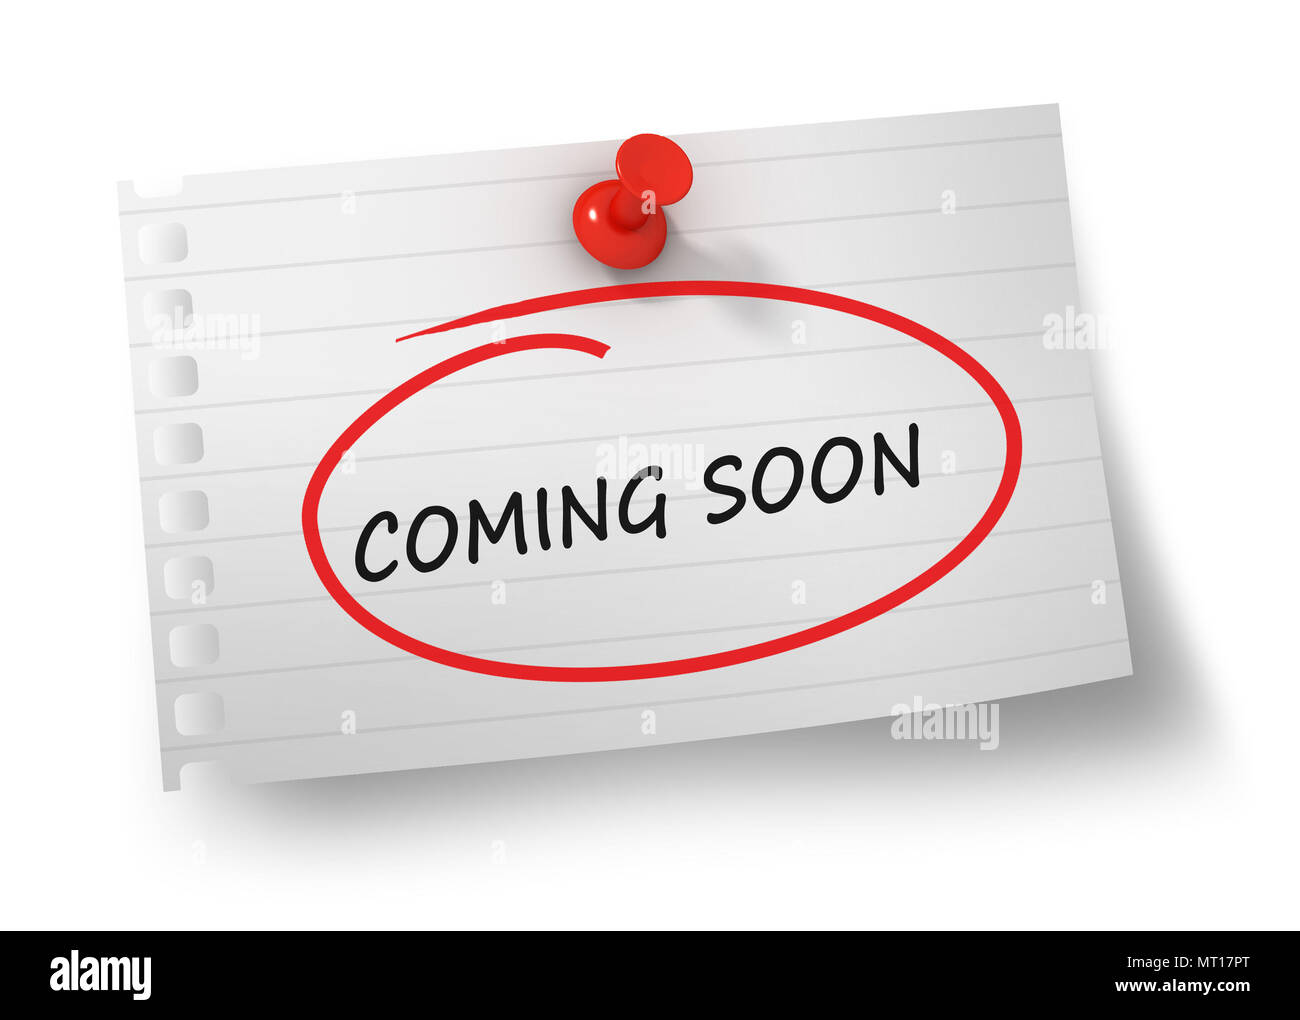 Coming Soon Concept 3d Illustration Isolated On White Background Stock Photo Alamy